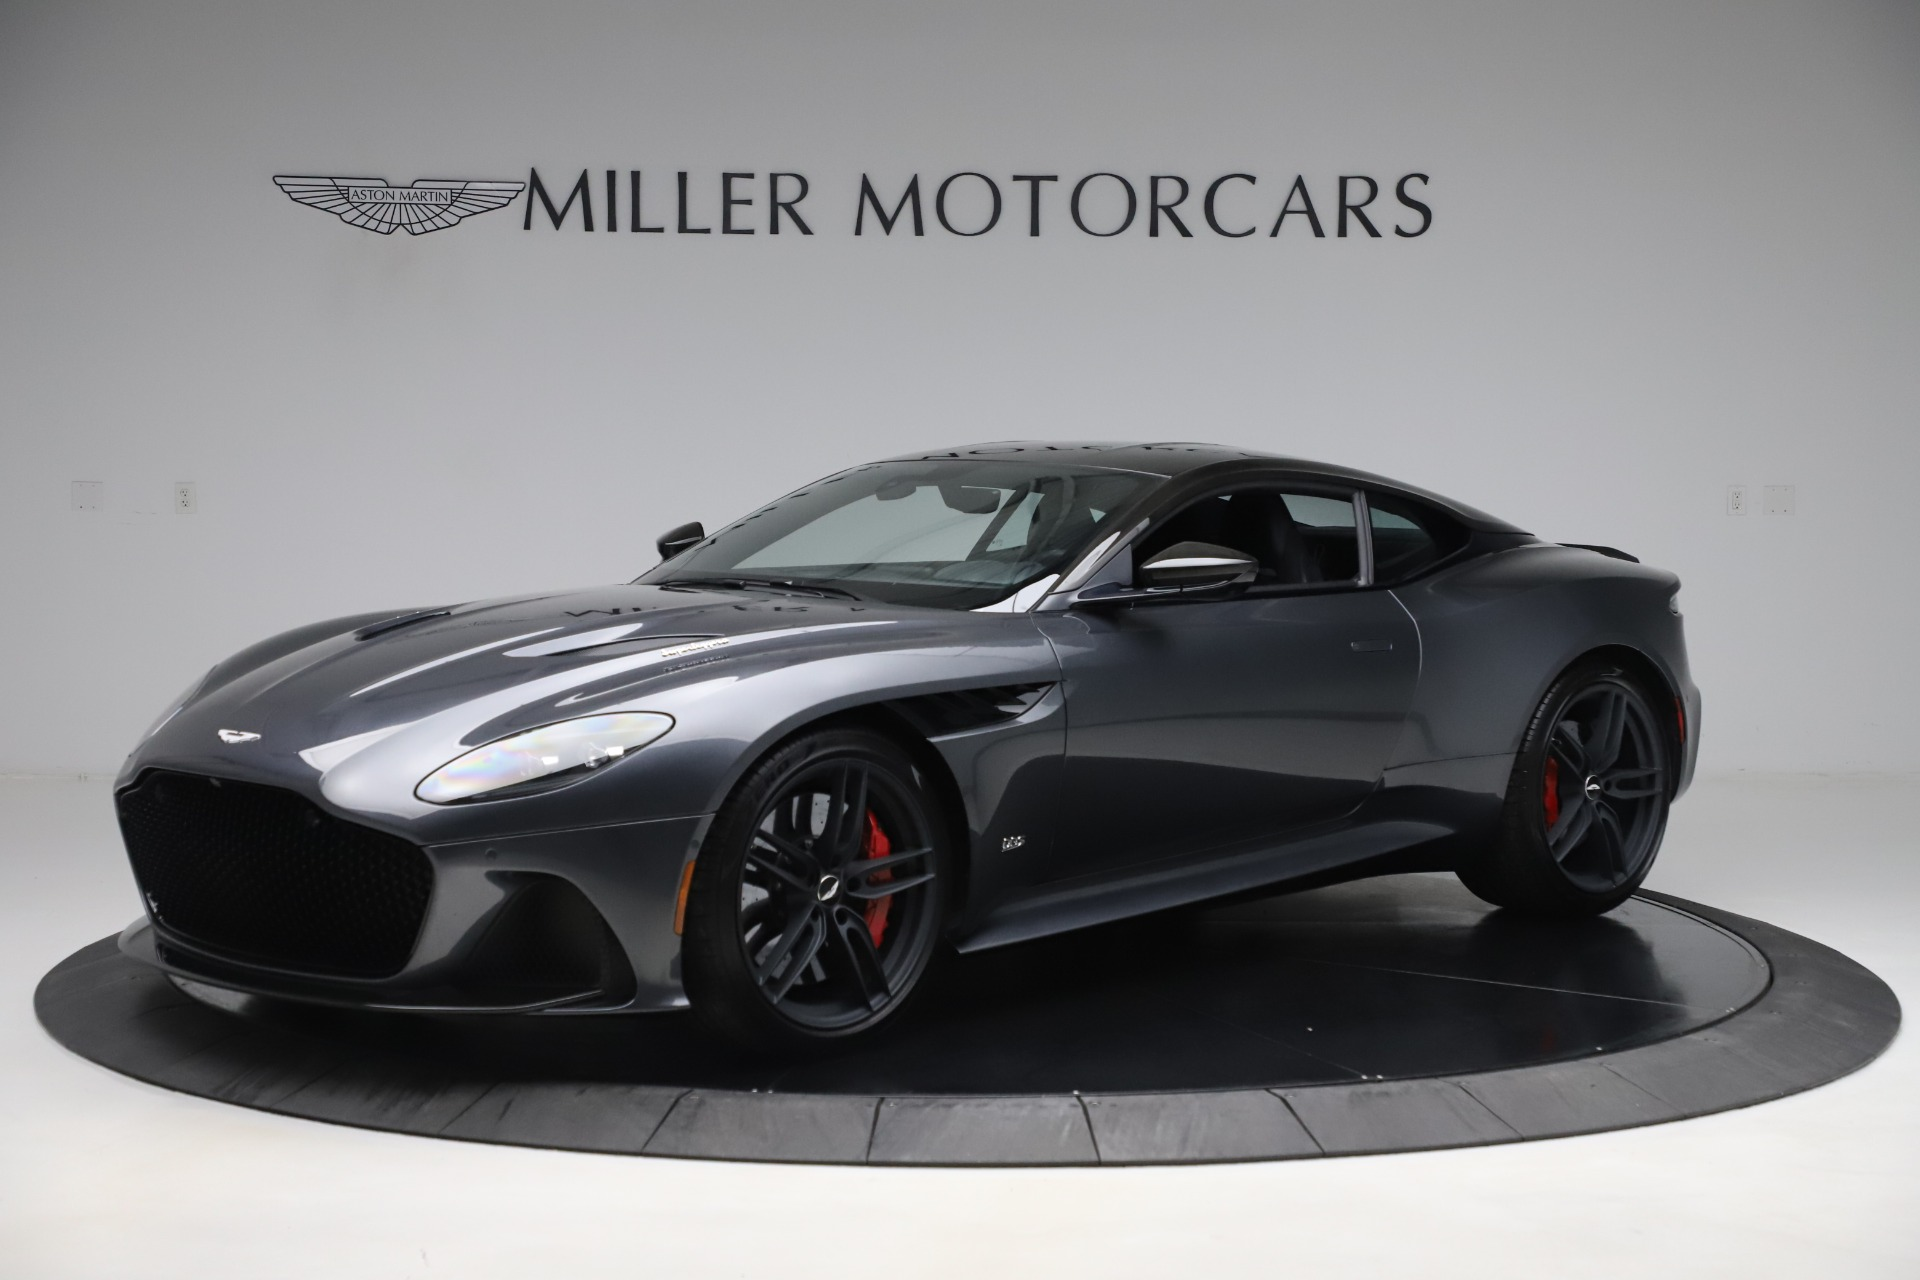 Used 2019 Aston Martin DBS Superleggera Coupe for sale Sold at Bentley Greenwich in Greenwich CT 06830 1